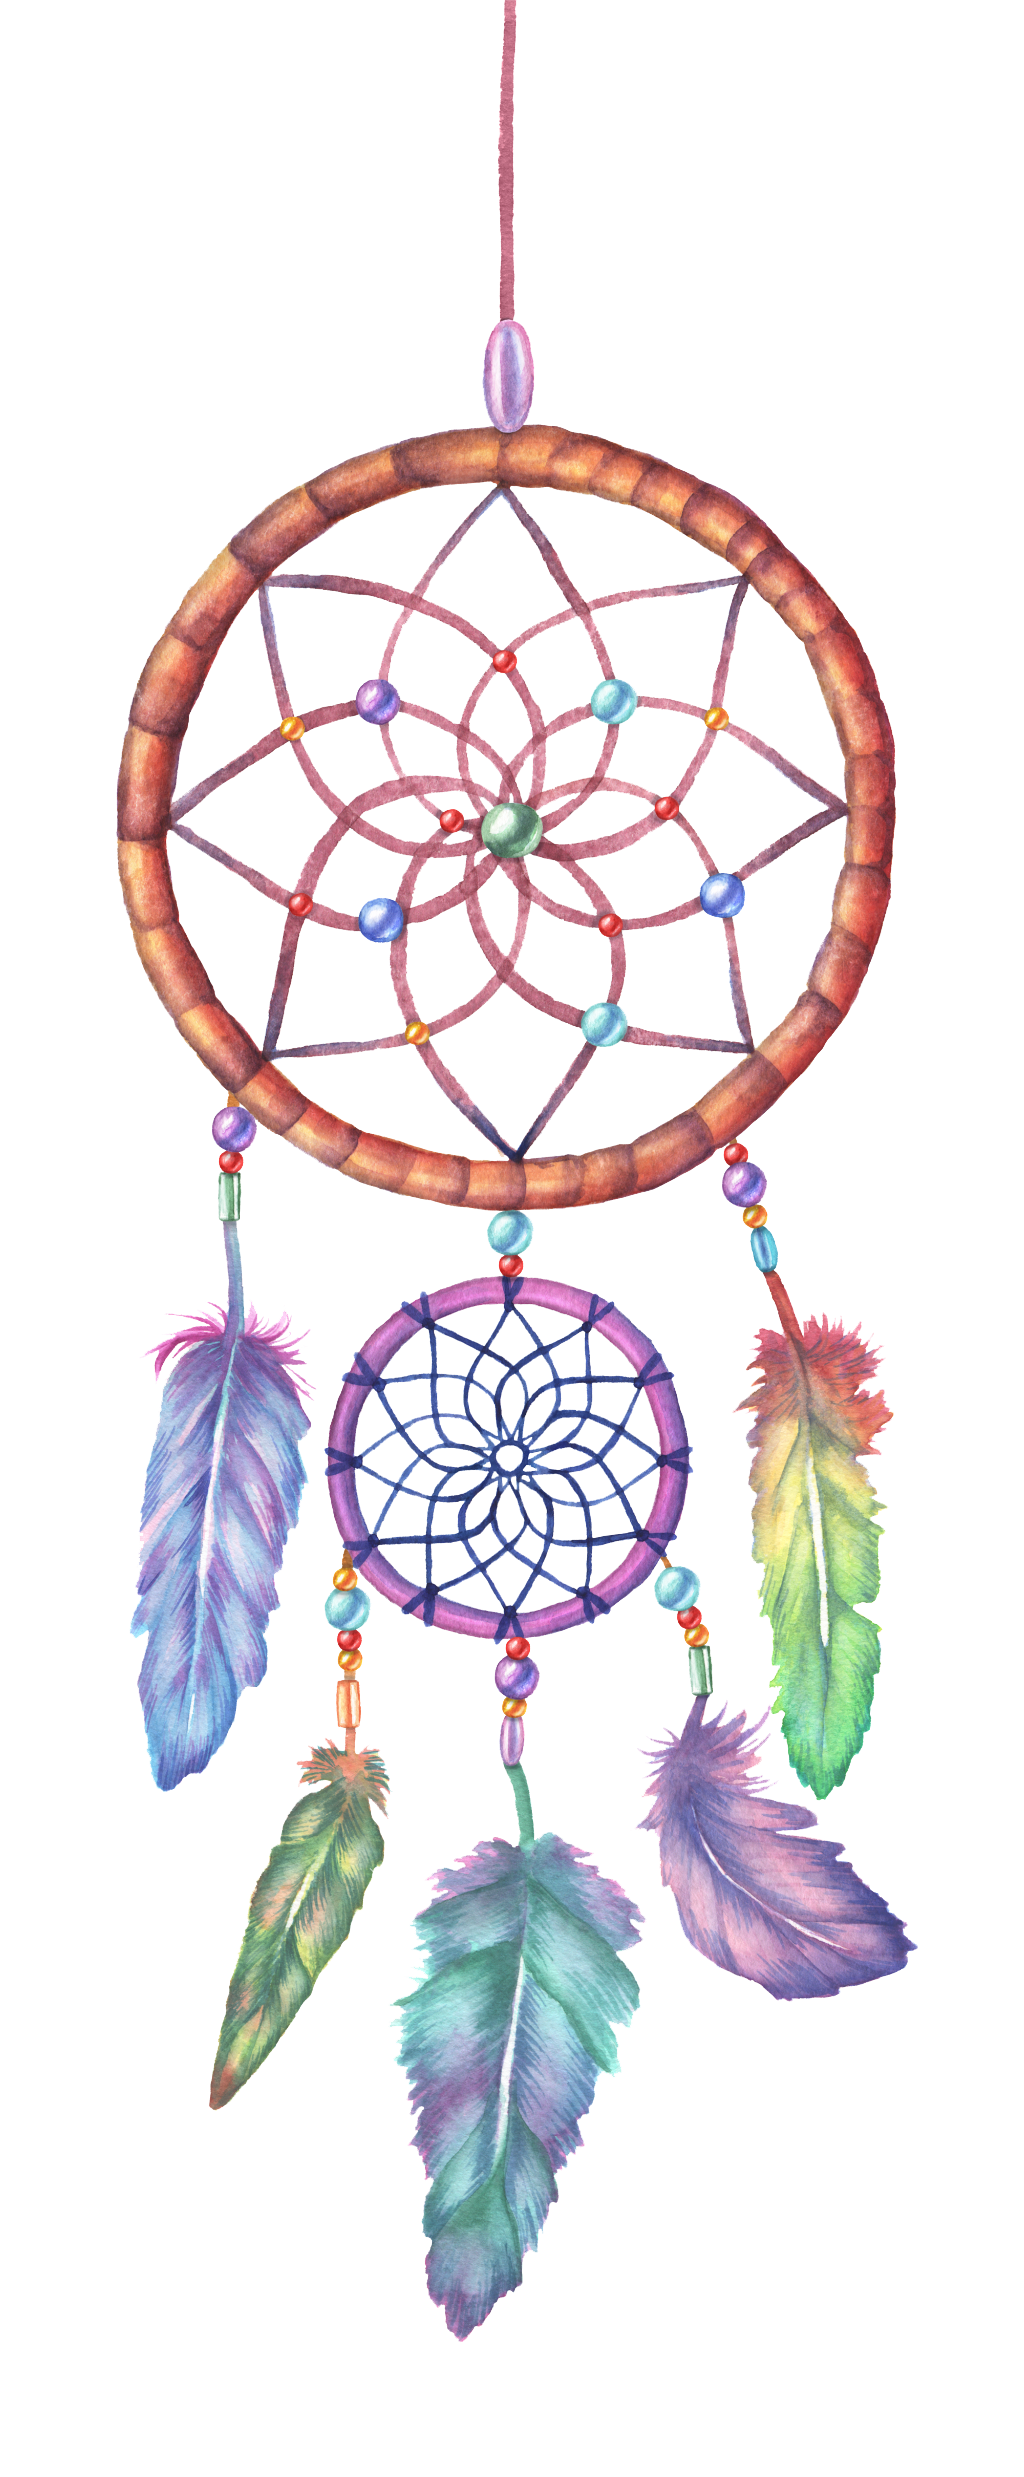 Colored drawing dreamcatcher. Watercolor painting illustration color